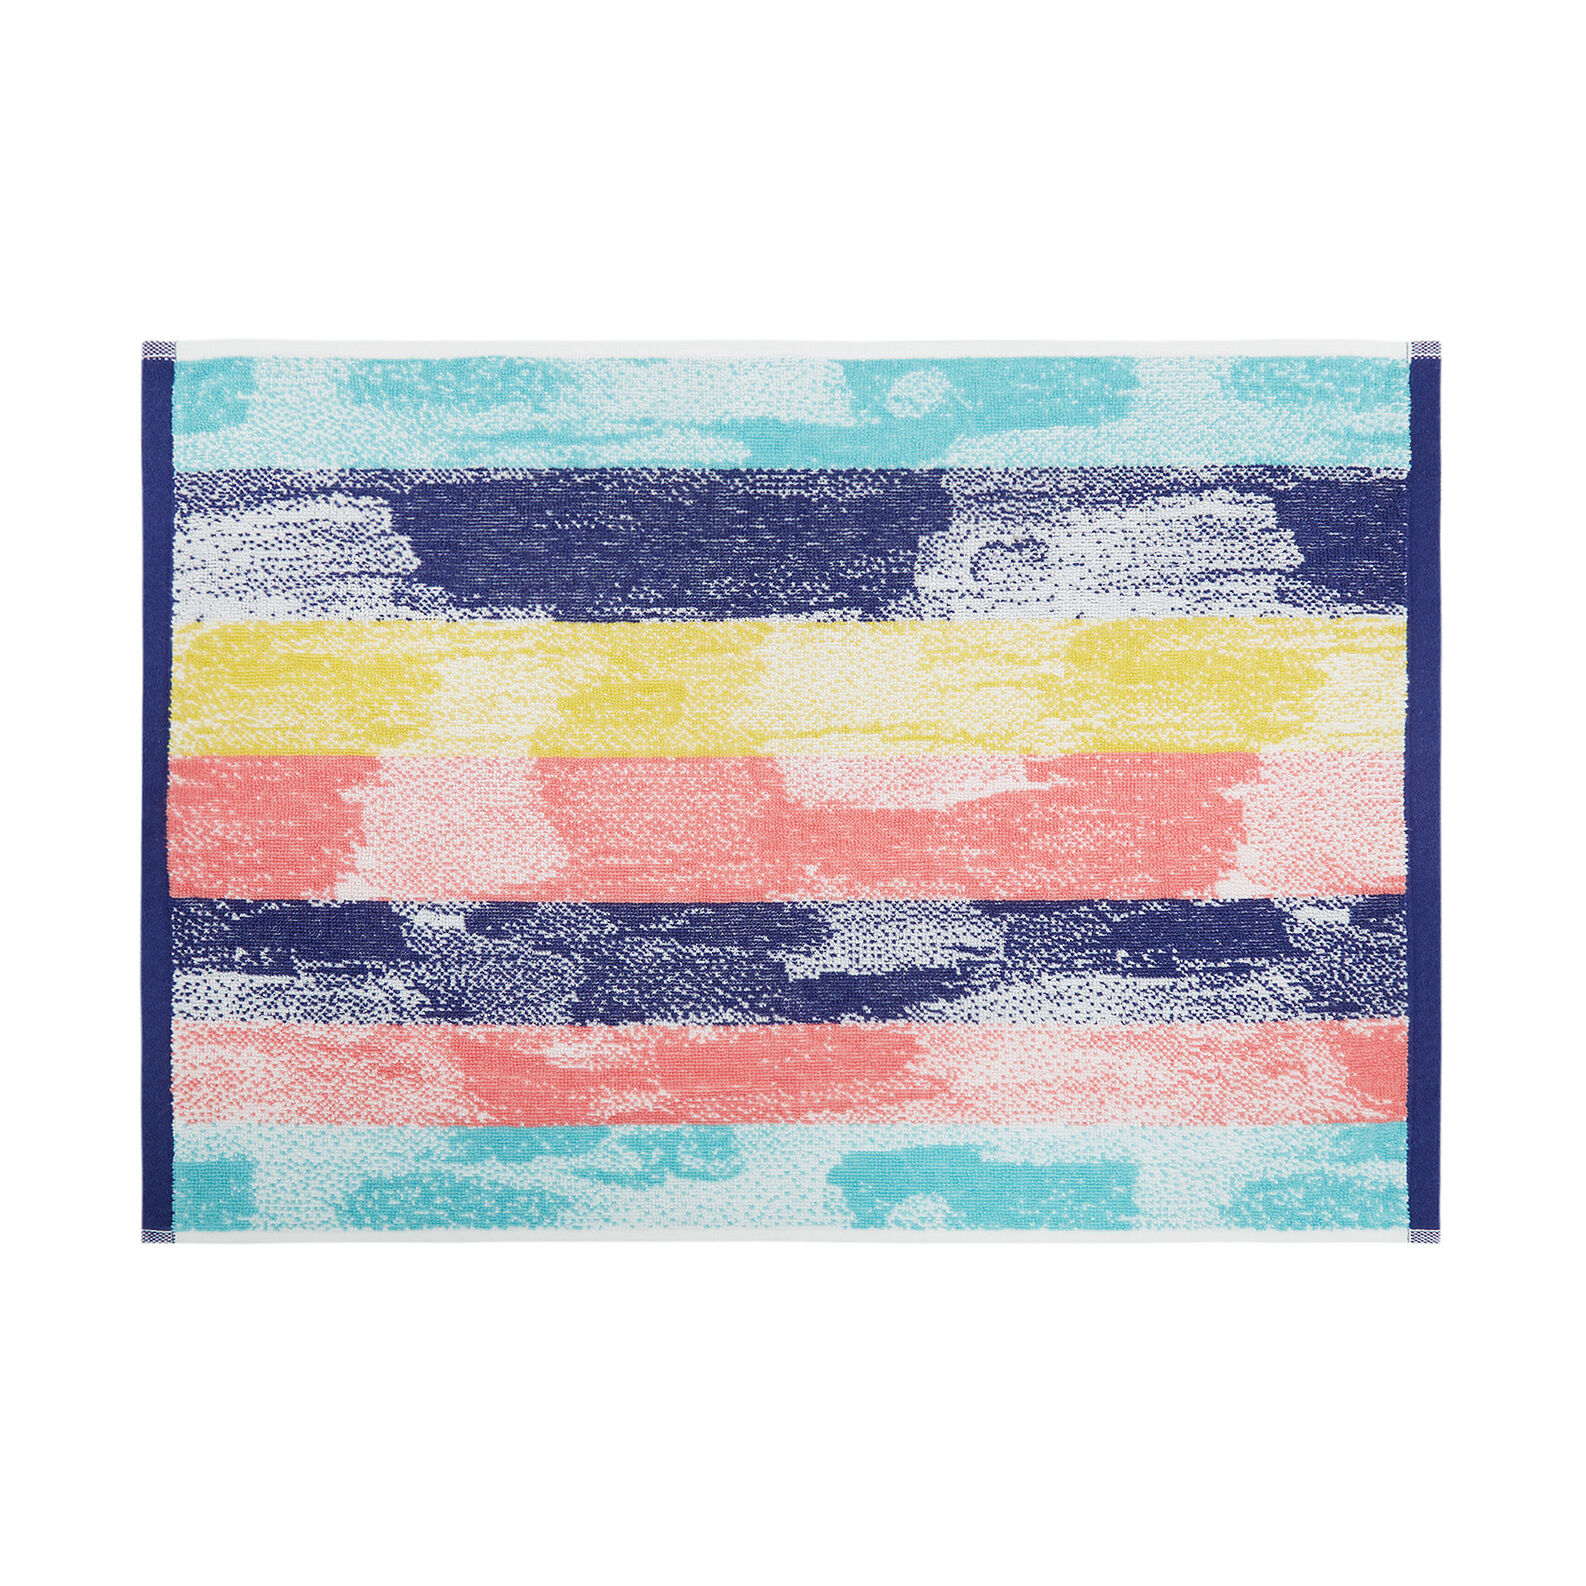 Cotton terry towel with brush strokes pattern